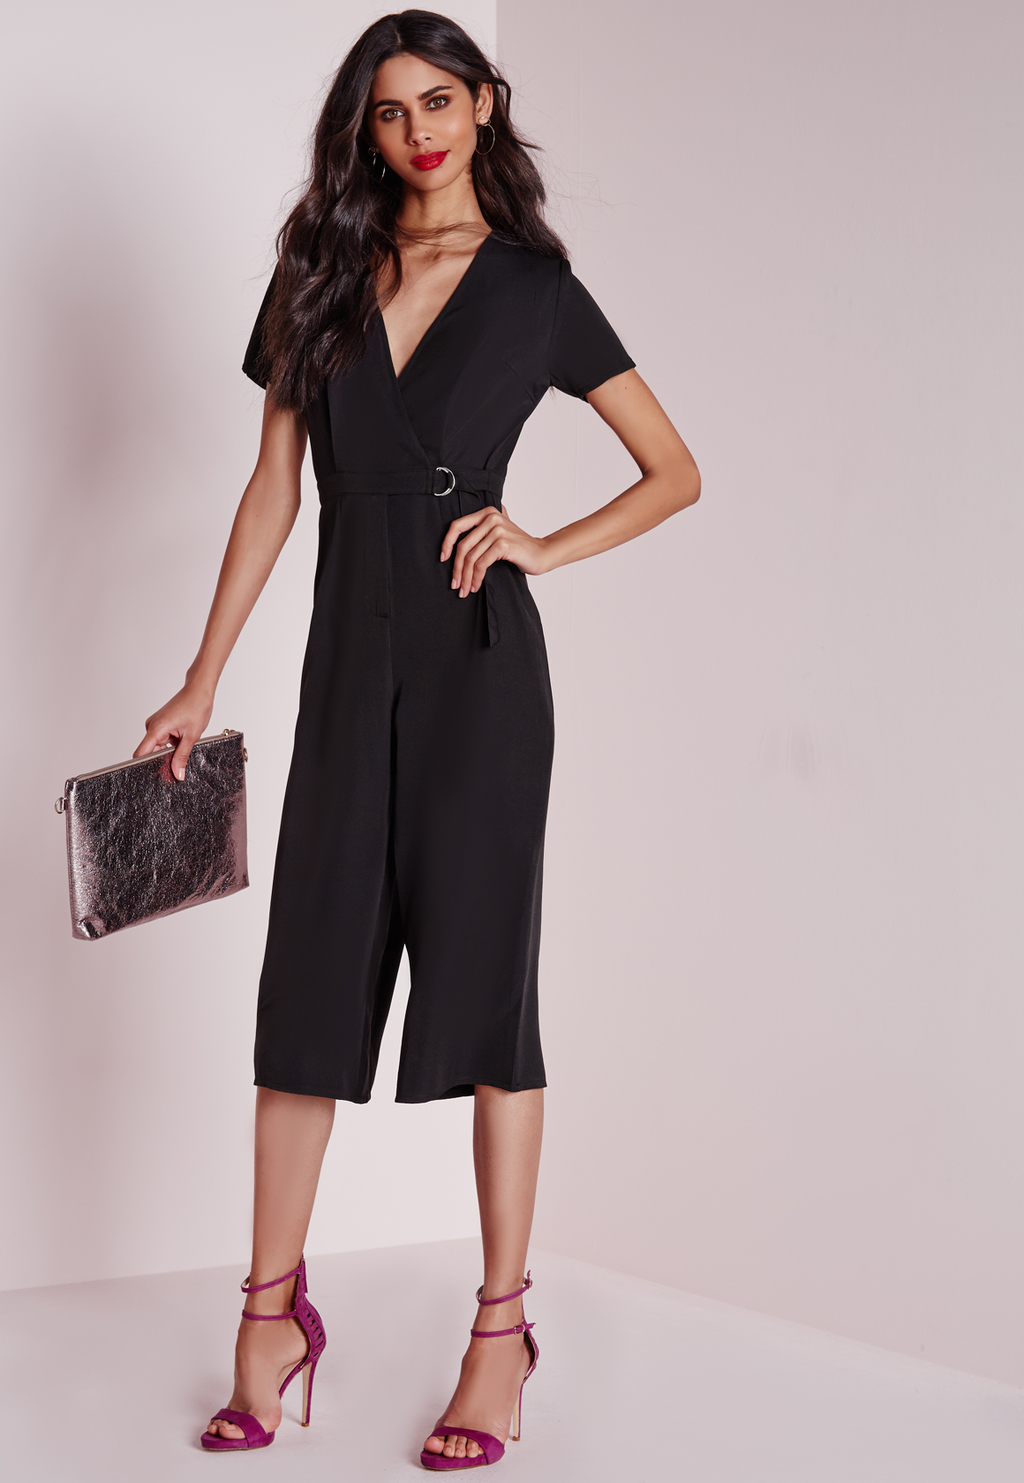 D Ring Wrap Culotte Jumpsuit Black, Black - neckline: v-neck; fit: tailored/fitted; pattern: plain; length: below the knee; predominant colour: black; occasions: evening, occasion; fibres: polyester/polyamide - stretch; sleeve length: short sleeve; sleeve style: standard; style: jumpsuit; pattern type: fabric; texture group: other - light to midweight; season: a/w 2015; wardrobe: event